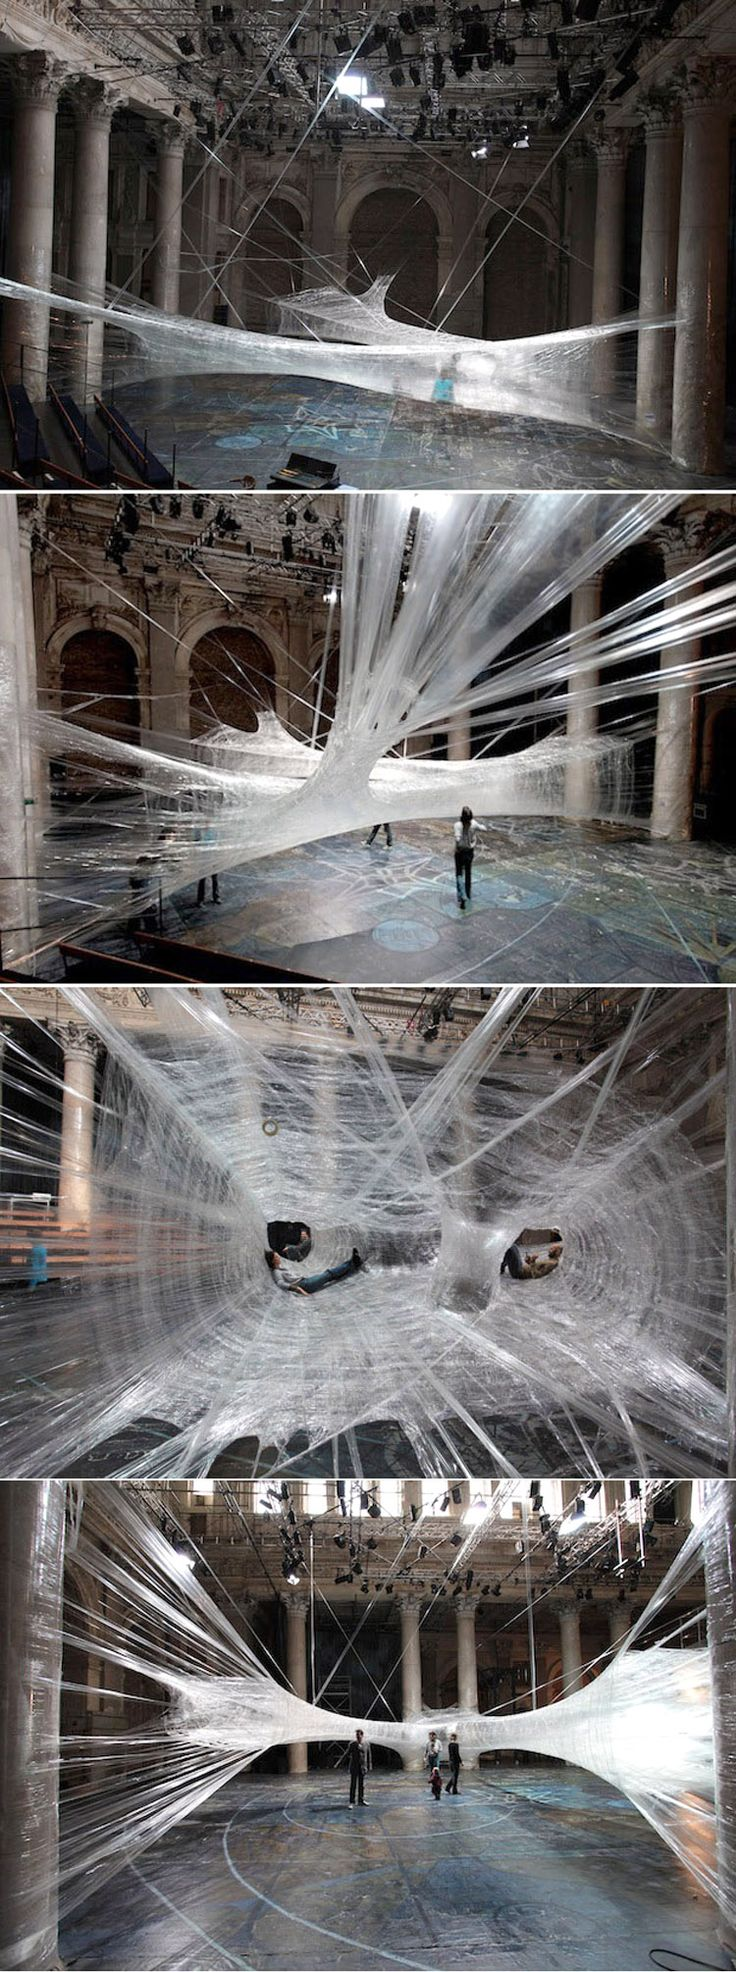 Sick Spider Web Installation Made of Packaging Tape     http://www.mymodernmet.com/profiles/blogs/sick-spider-web-installation